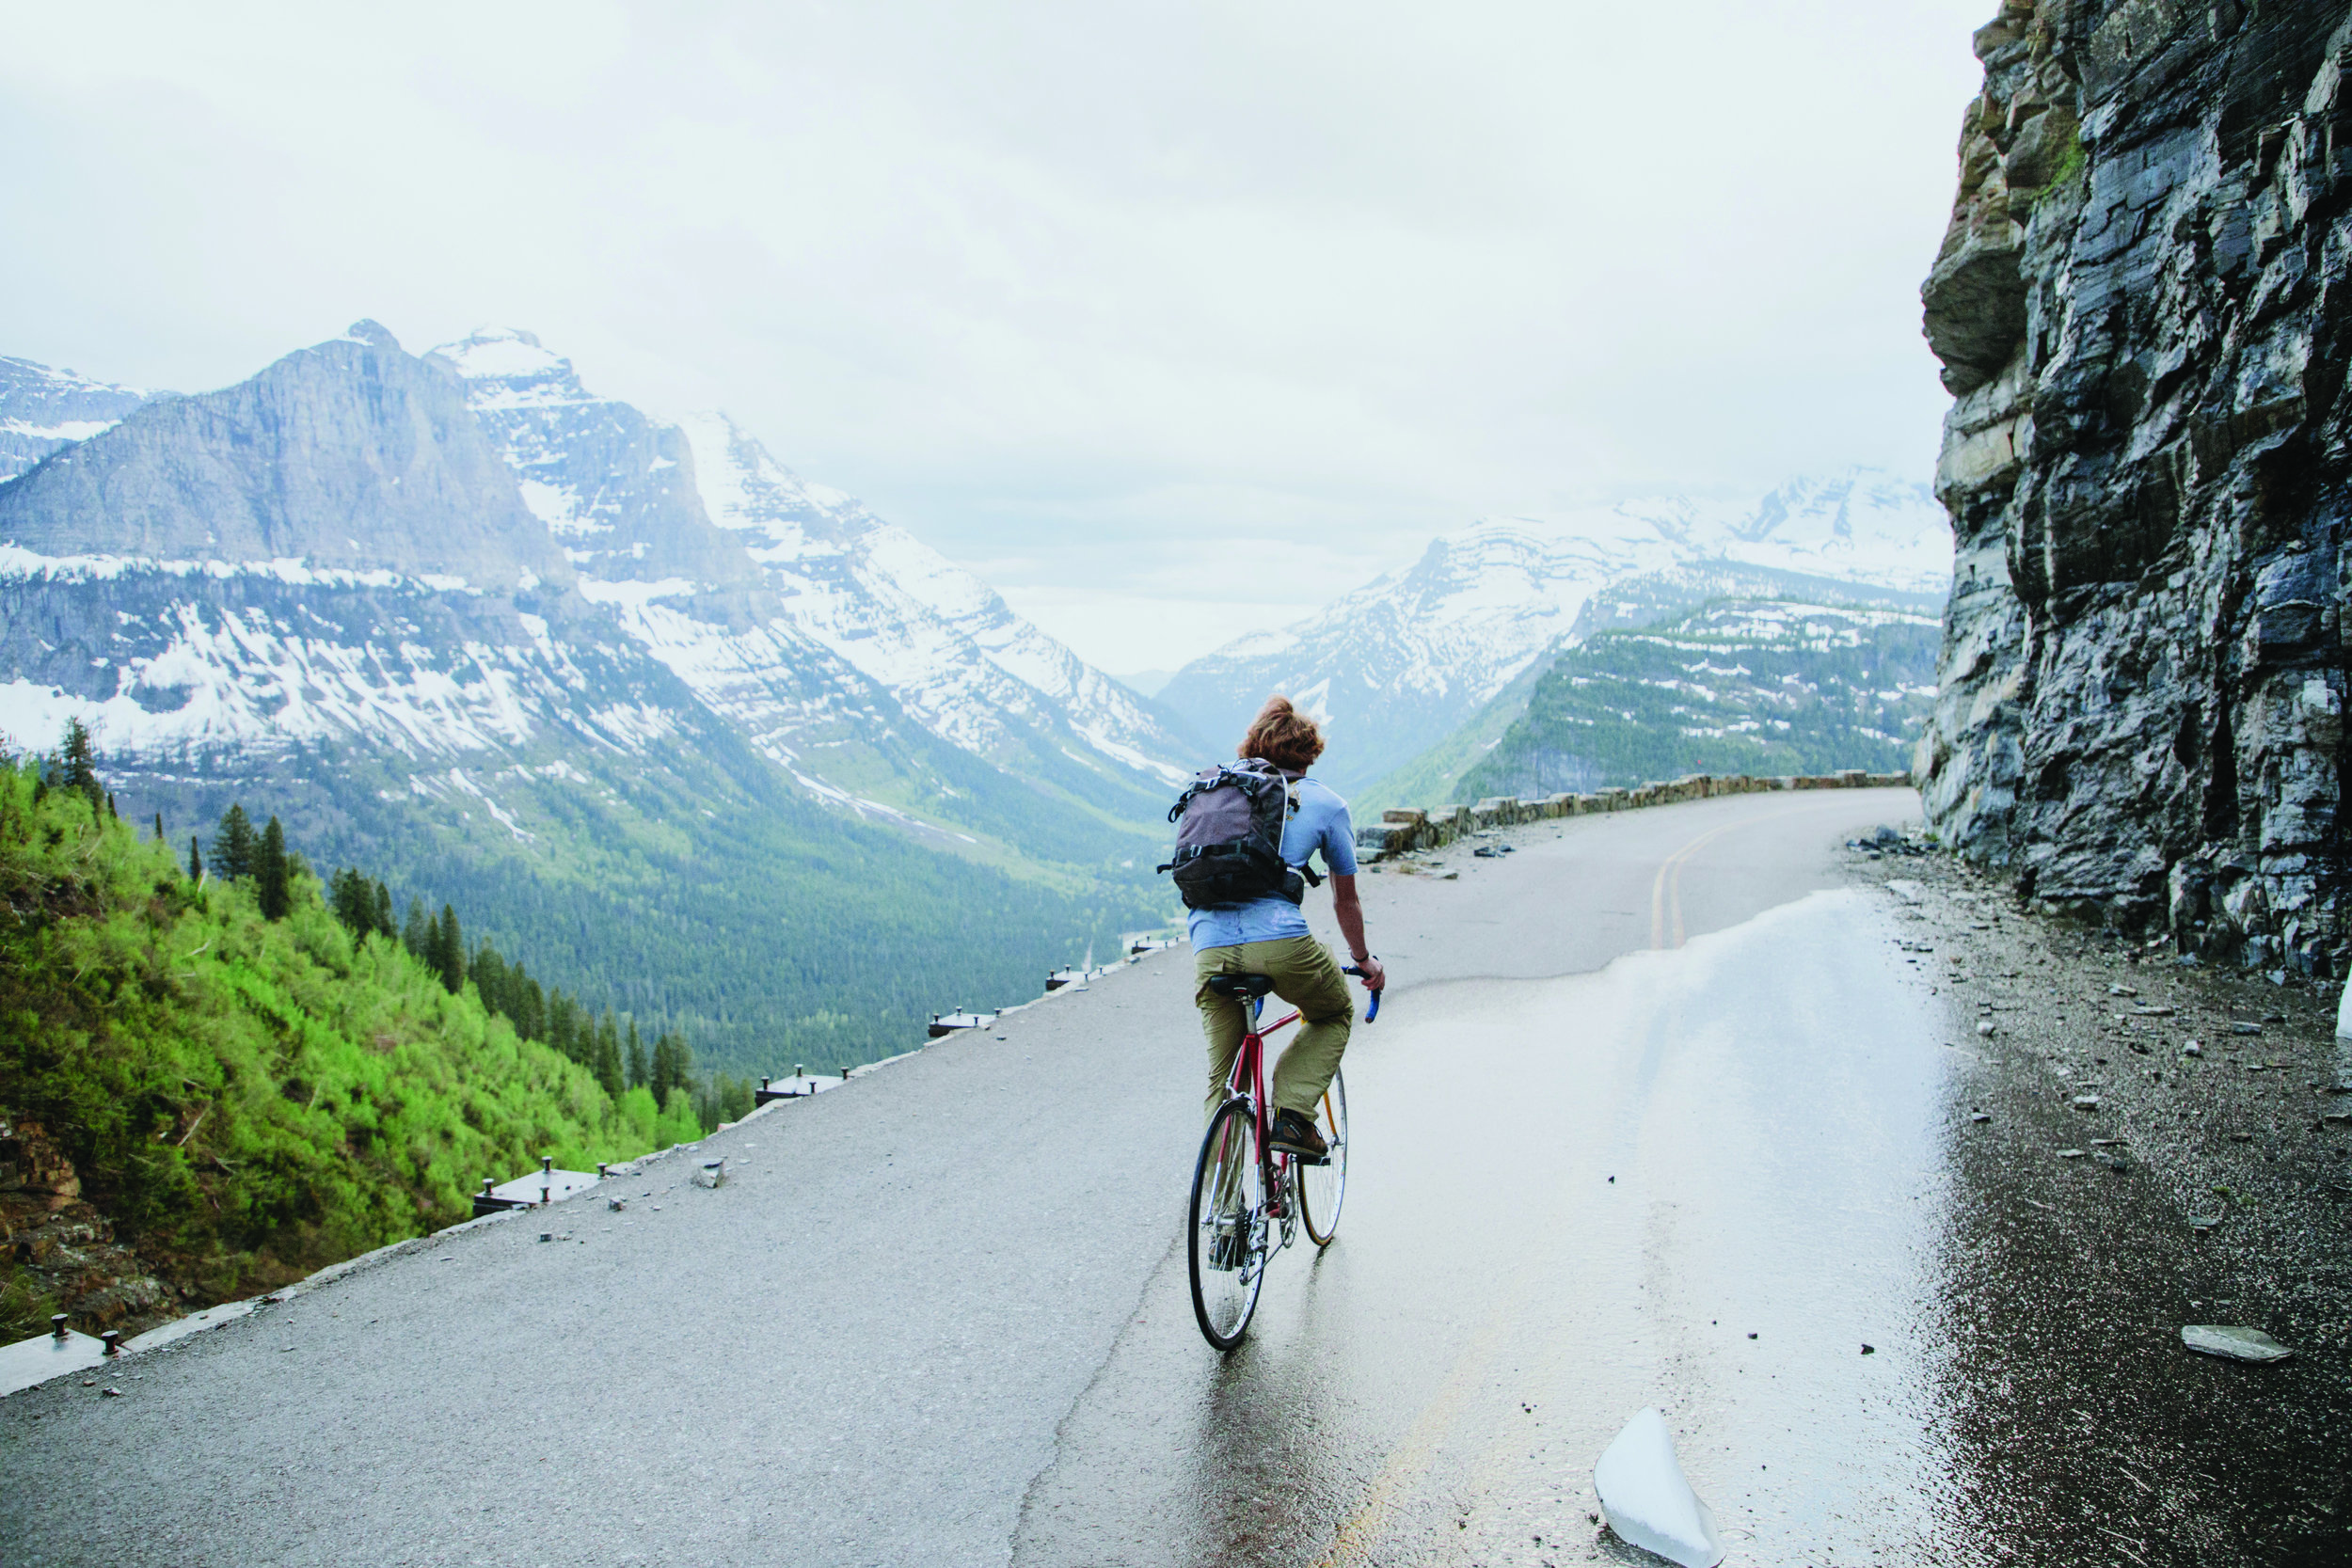 Maybe one of the most famous roads in North America, the Going to the Sun road in Glacier National Park is open to bikers before it completely opens to vehicle traffic. The effort can be excruciating but it gives you a great chance to stretch your legs after the long winter months; having the views to yourself are an added benefit.